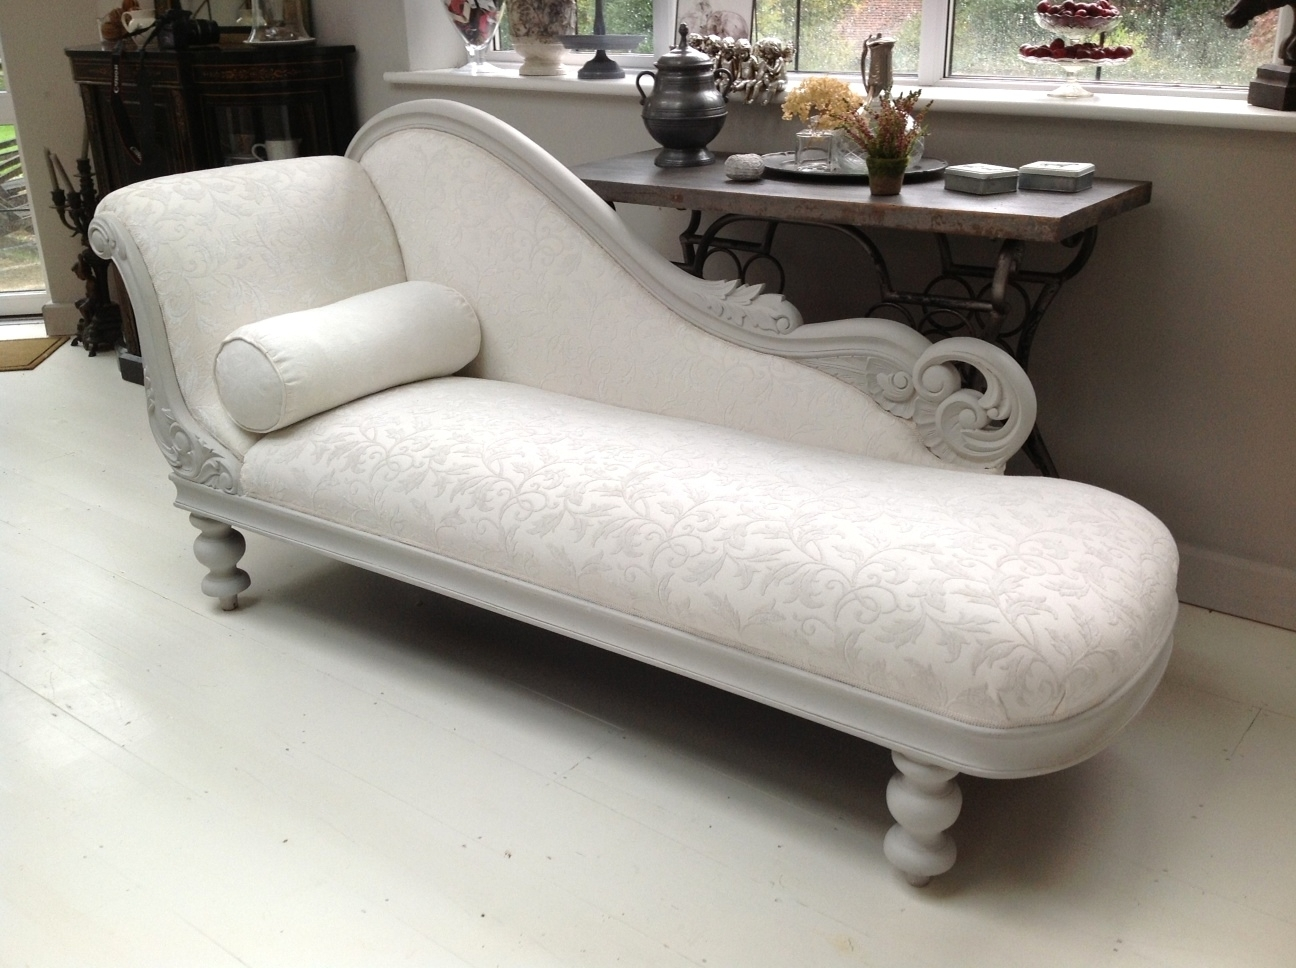 A Dazzling Chaise Longue, Painted In Annie Sloan™ Chalk Paint Pertaining To 2017 Damask Chaise Lounge Chairs (View 1 of 15)